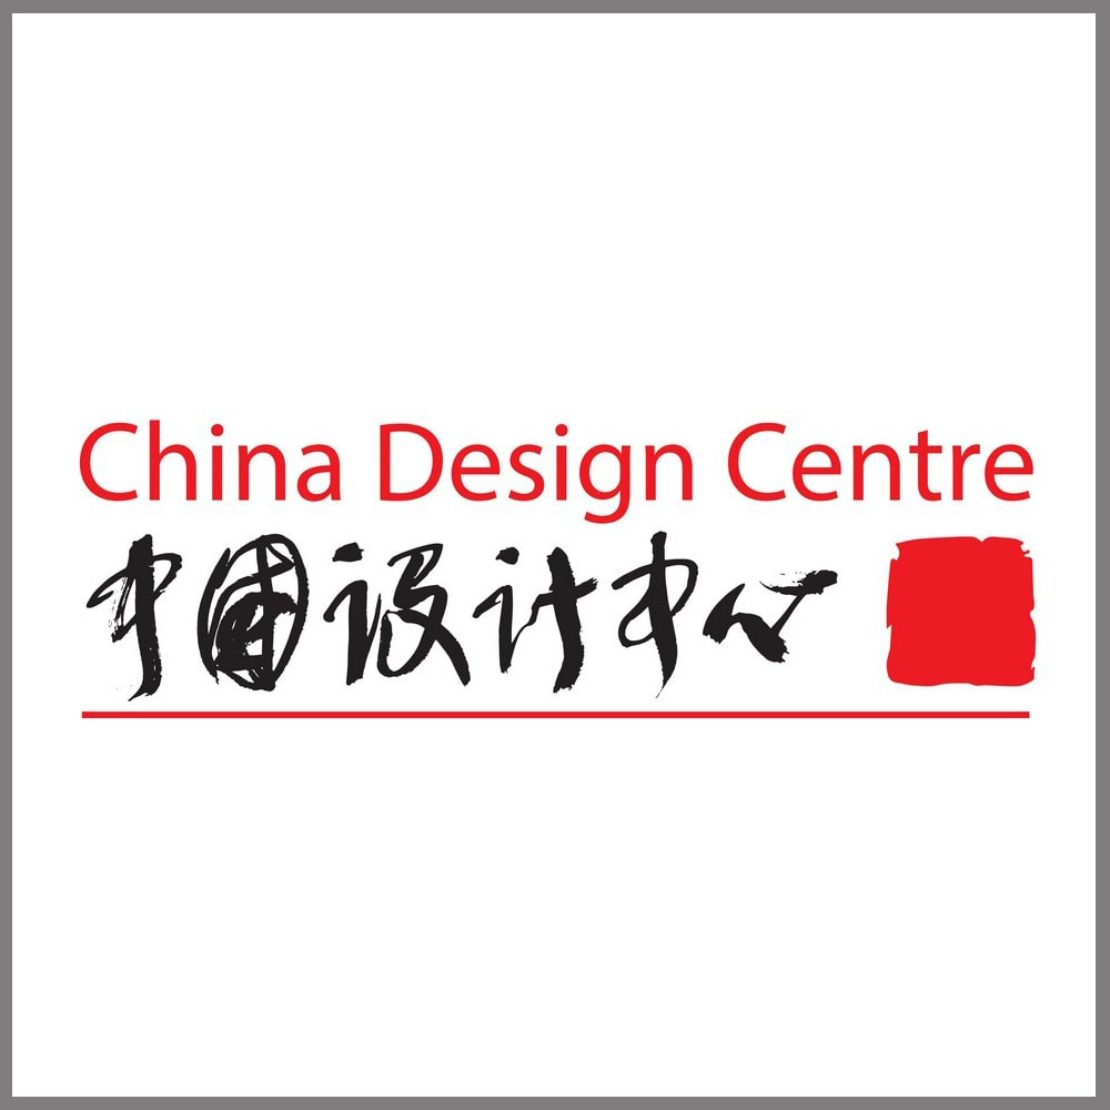 Gillian Horn at The China Design Centre